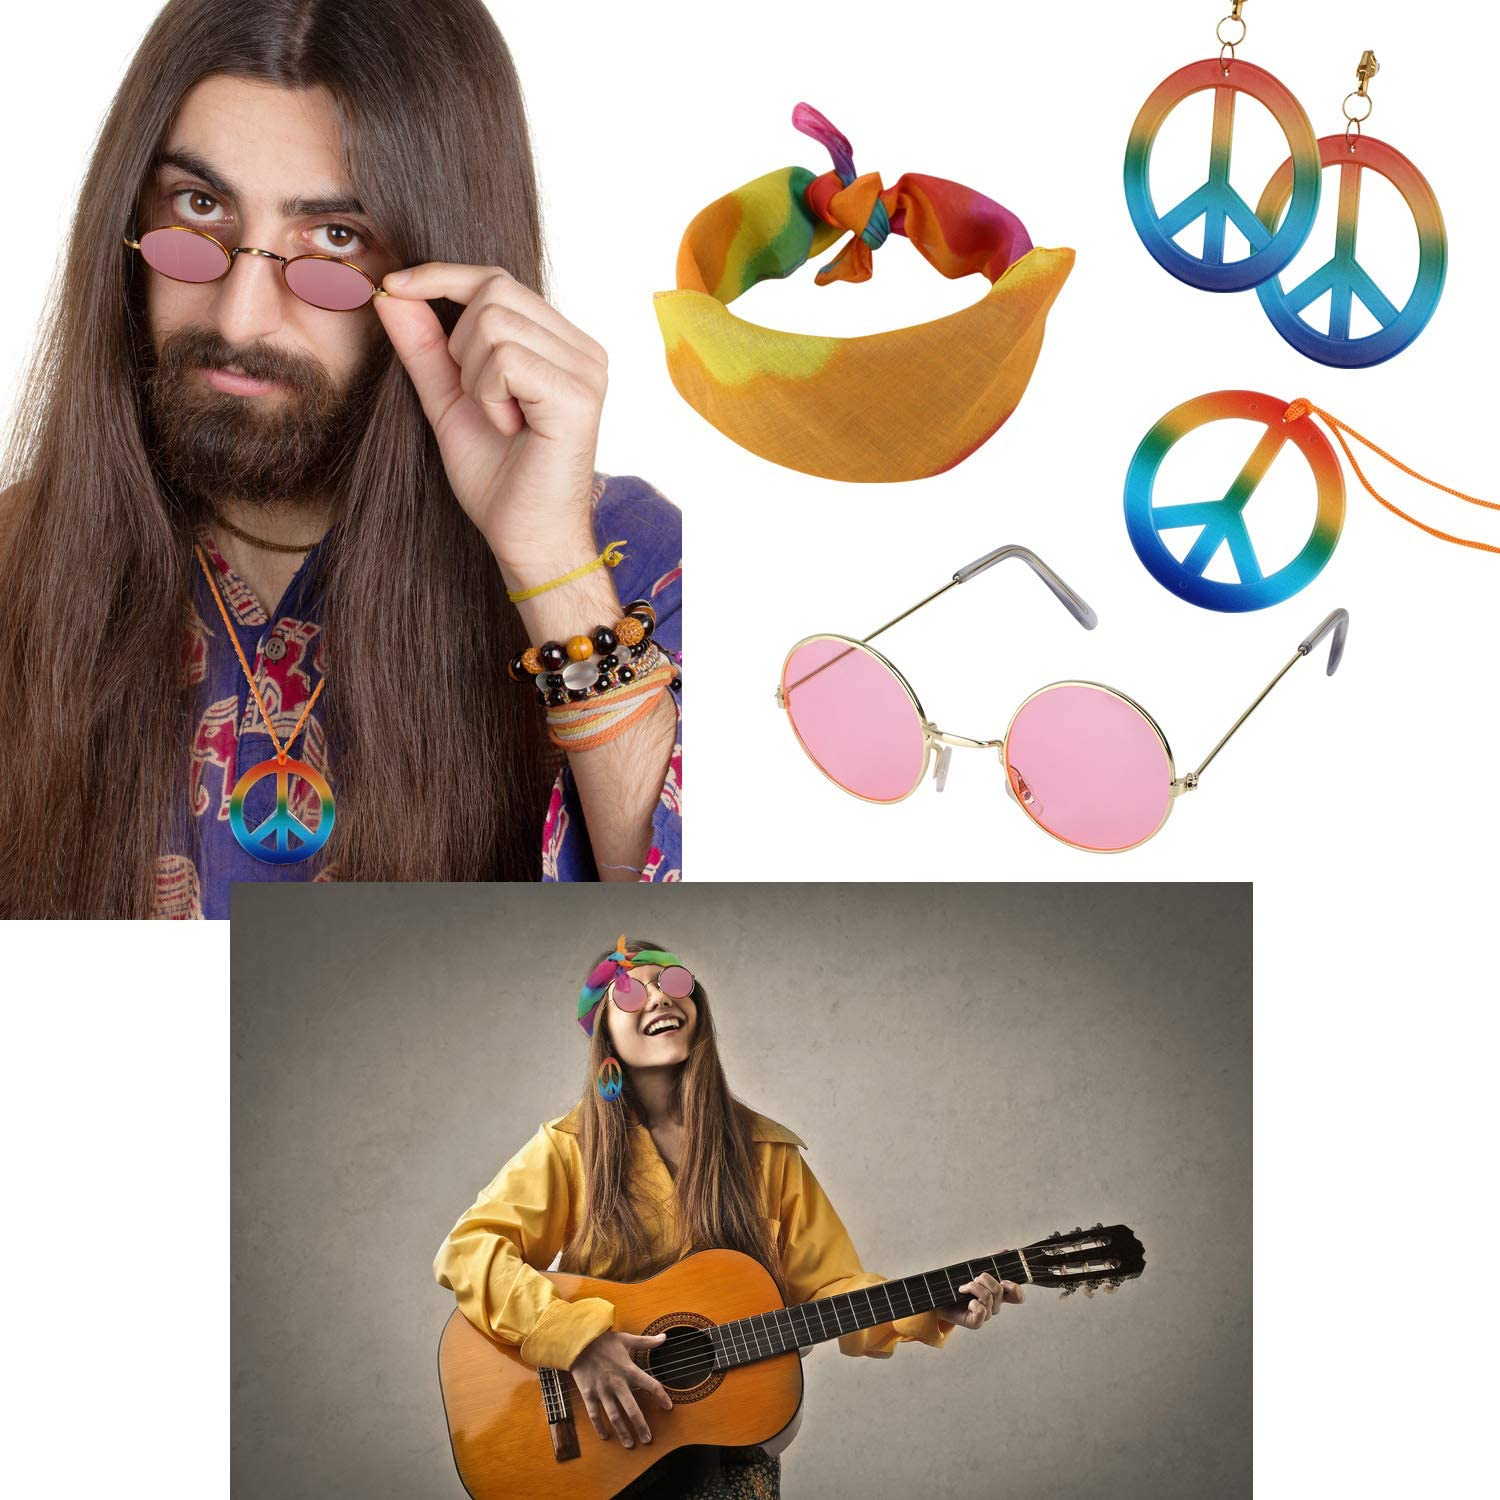 FOZZA 4 Pieces Hippie Costume Accessories Set,Includes Hippie Sunglasses,Rainbow Peace Sign Earrings and Necklace,Hippie Tie Dye Bandana Headband for 60s Or 70s Hippie Themed Party